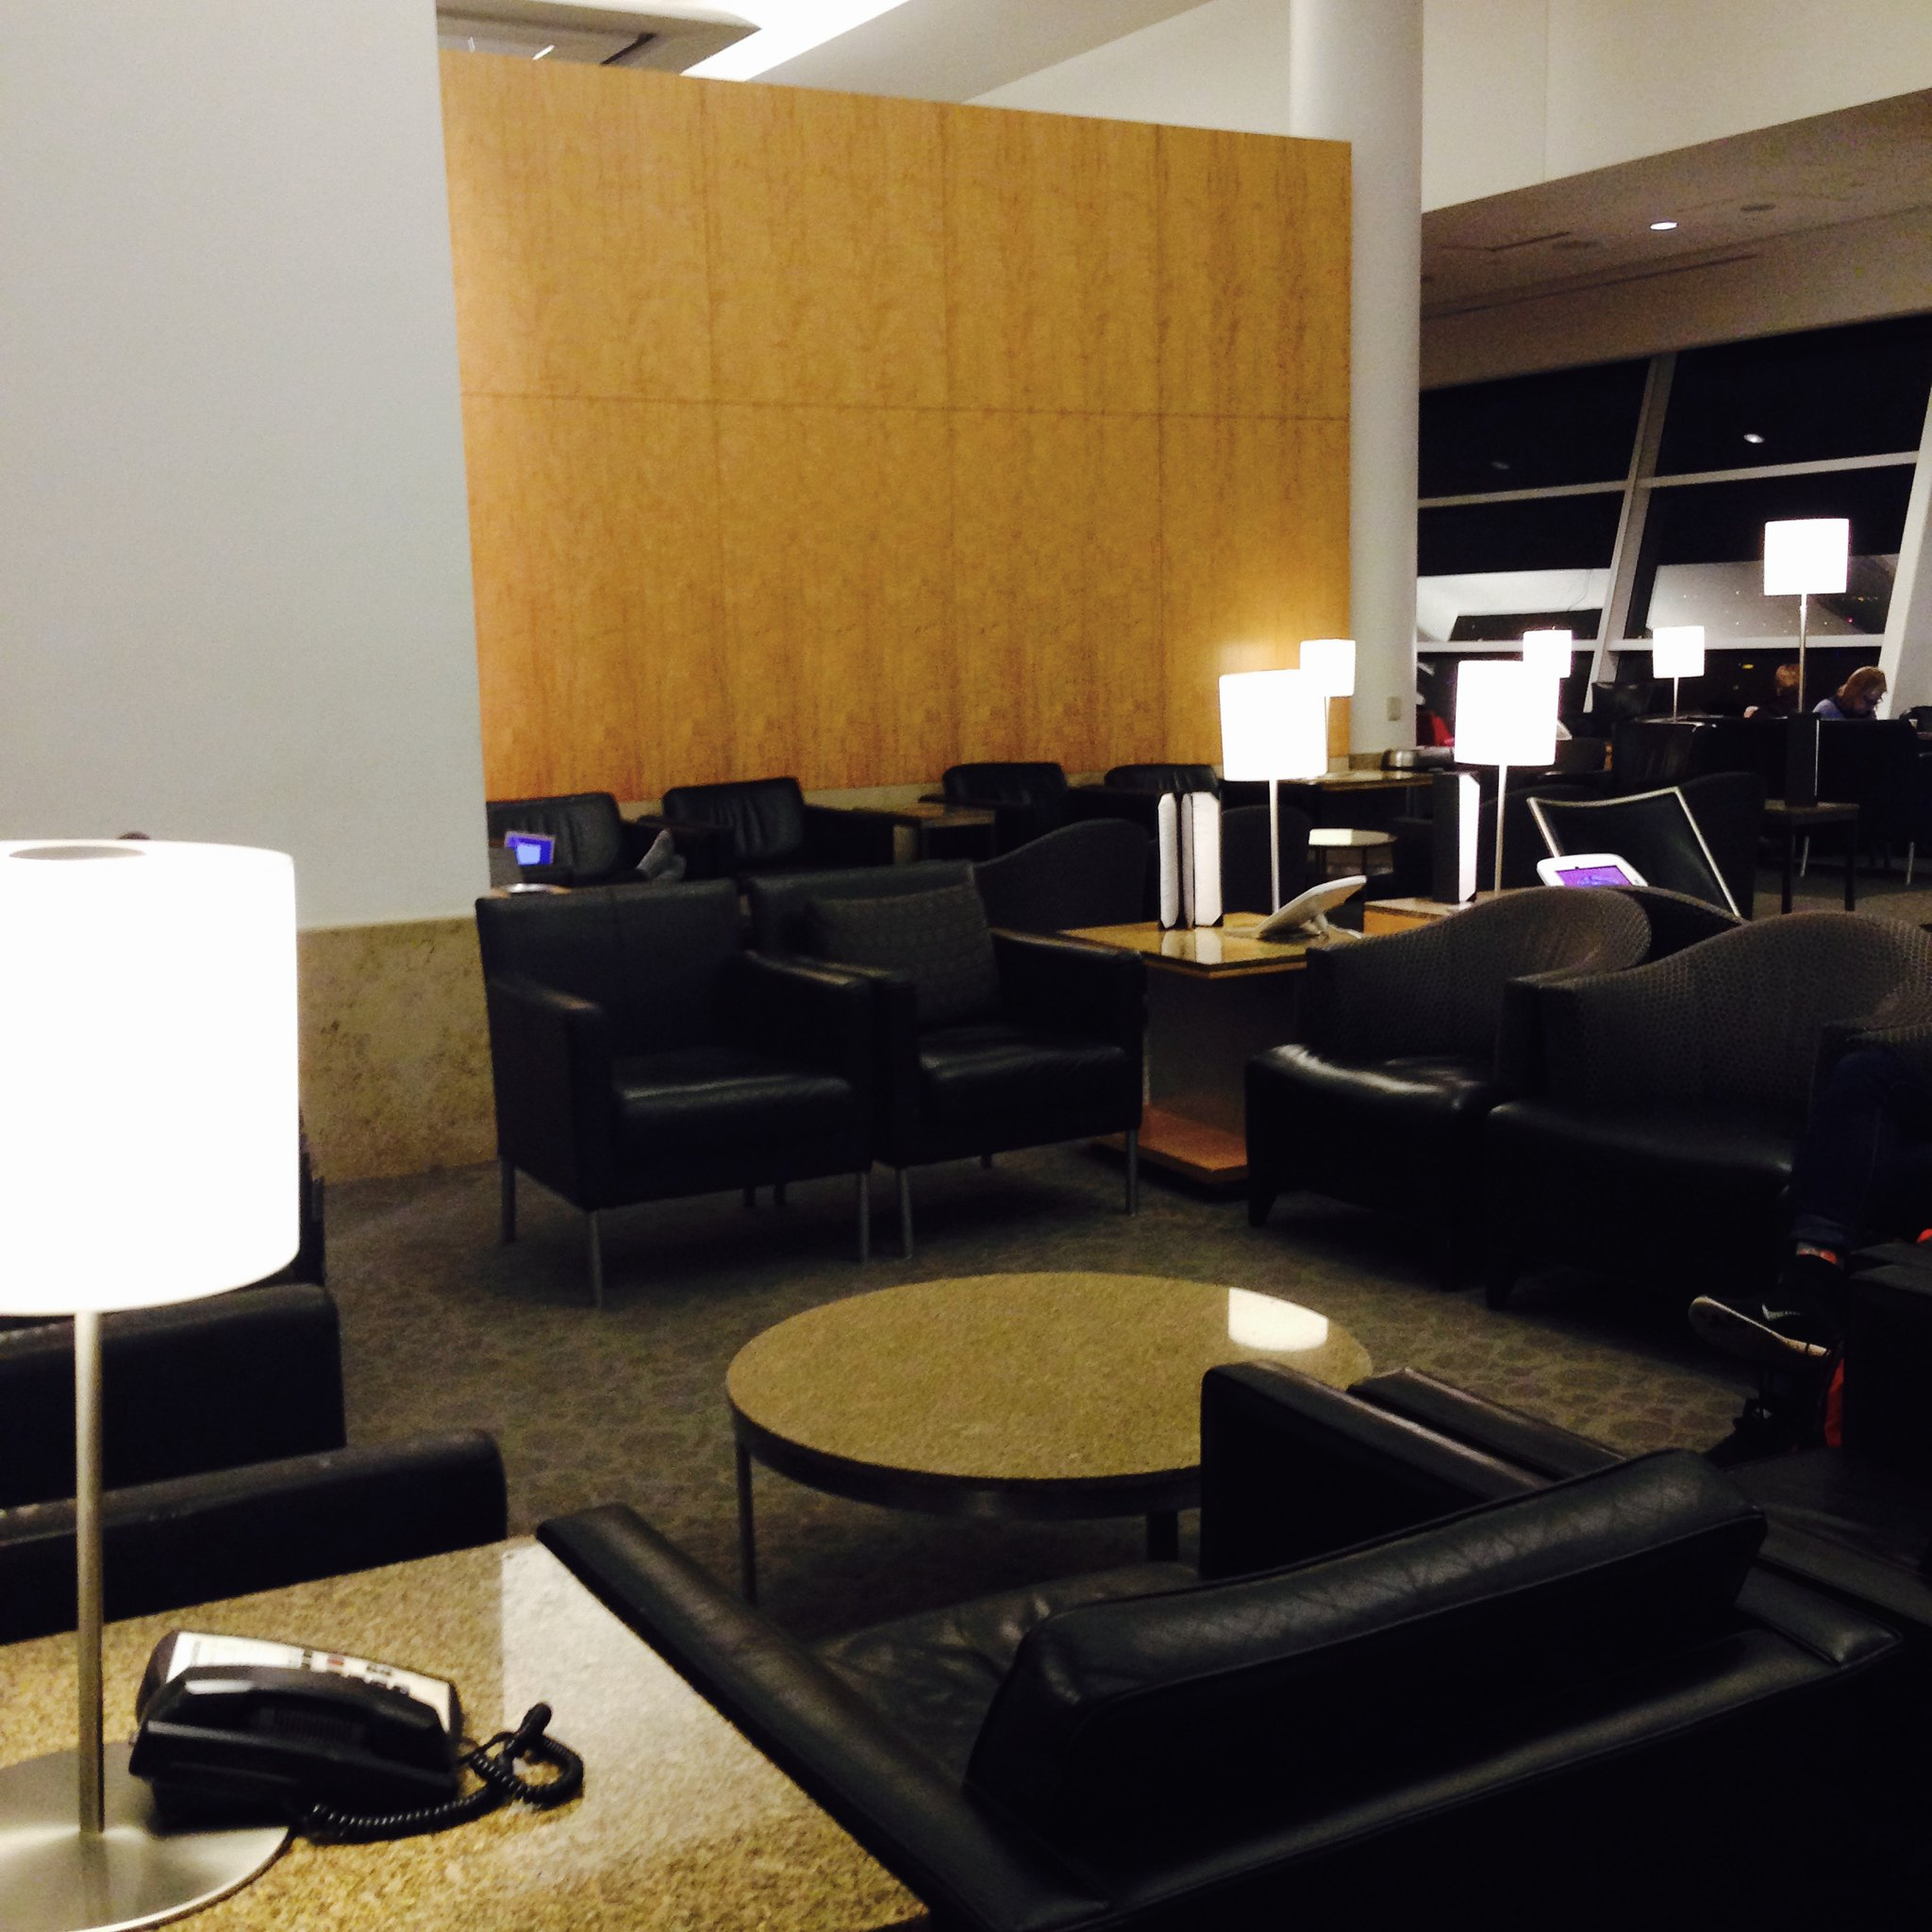 Dallas DFW D Terminal Admirals Club